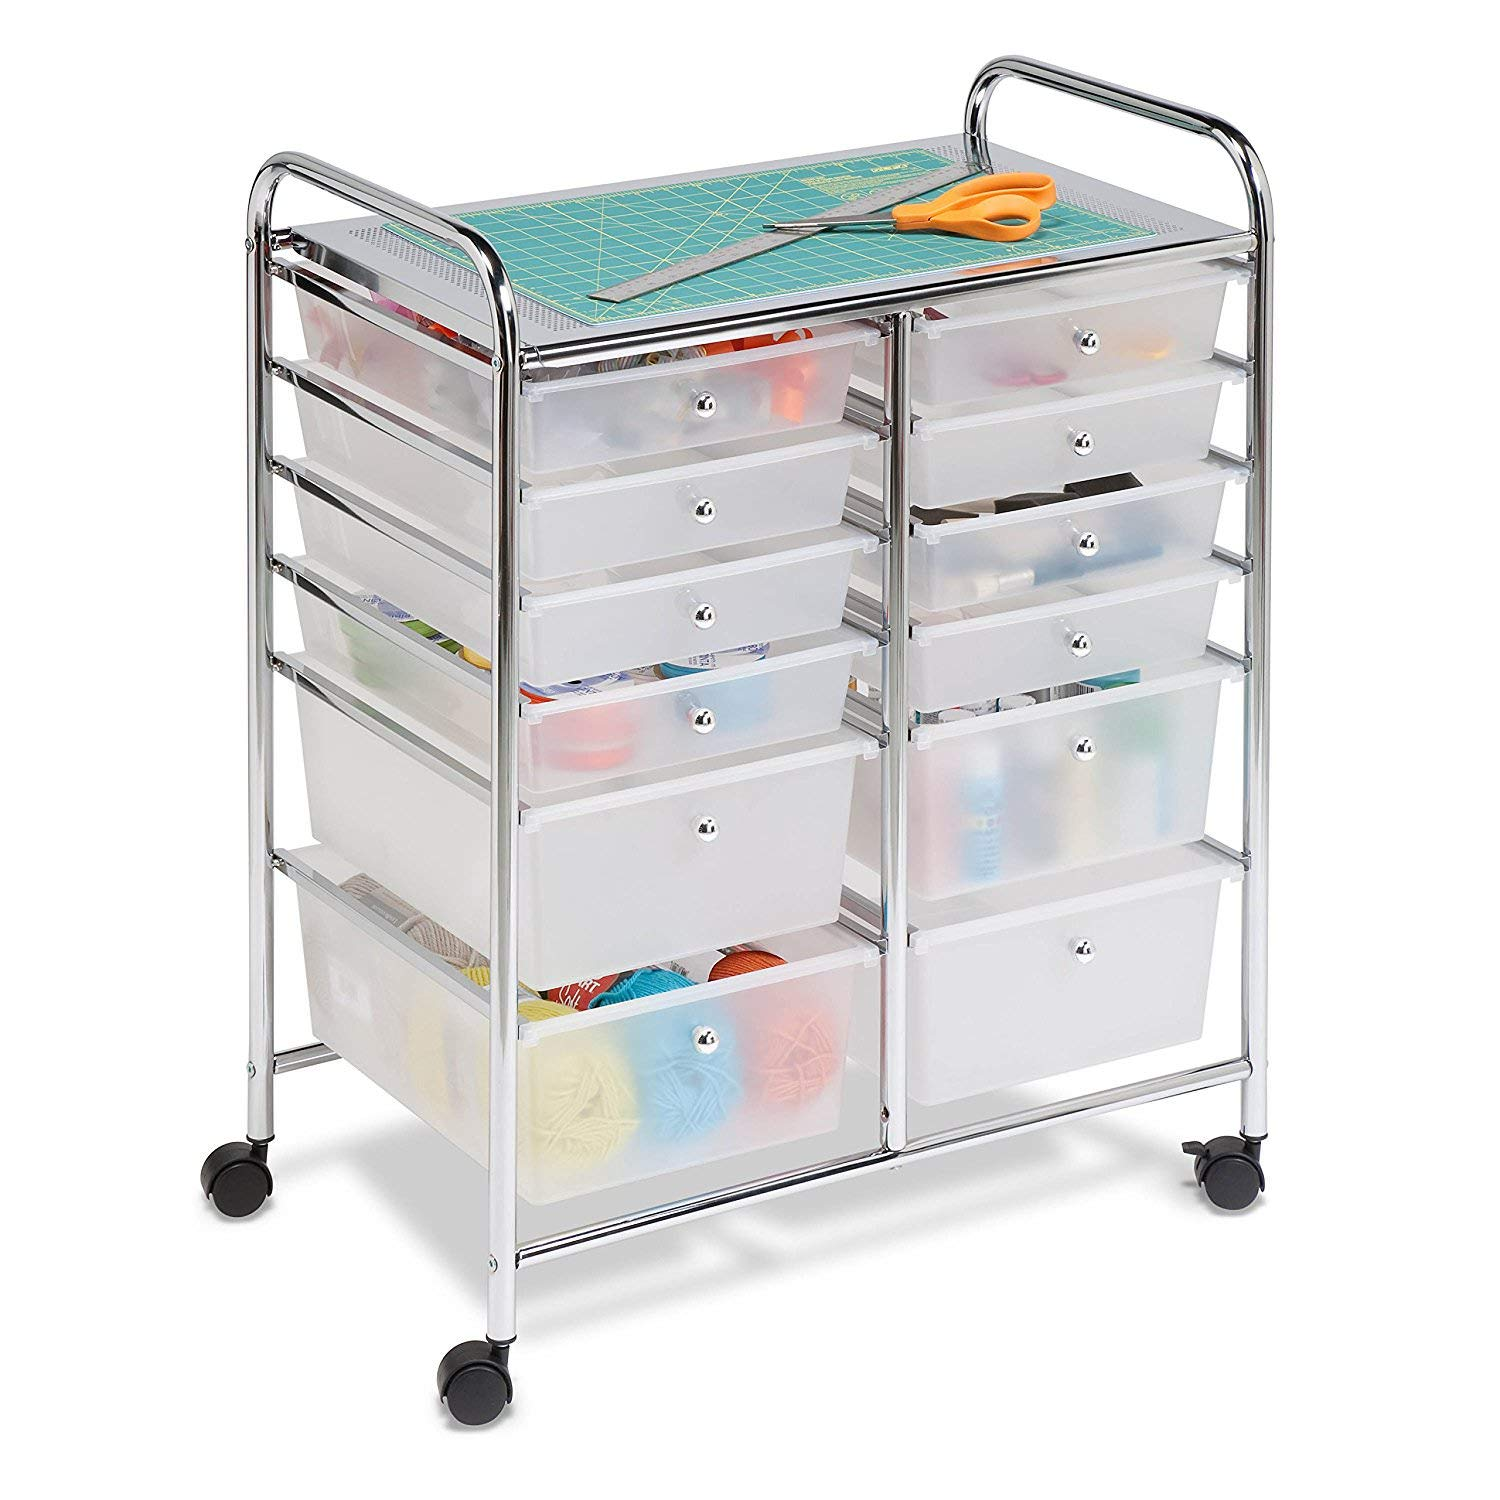 Honey-Can-Do Doublewide 12-Drawer Rolling Cart, Chrome/Clear (2 Set 12 Plastic Drawers)